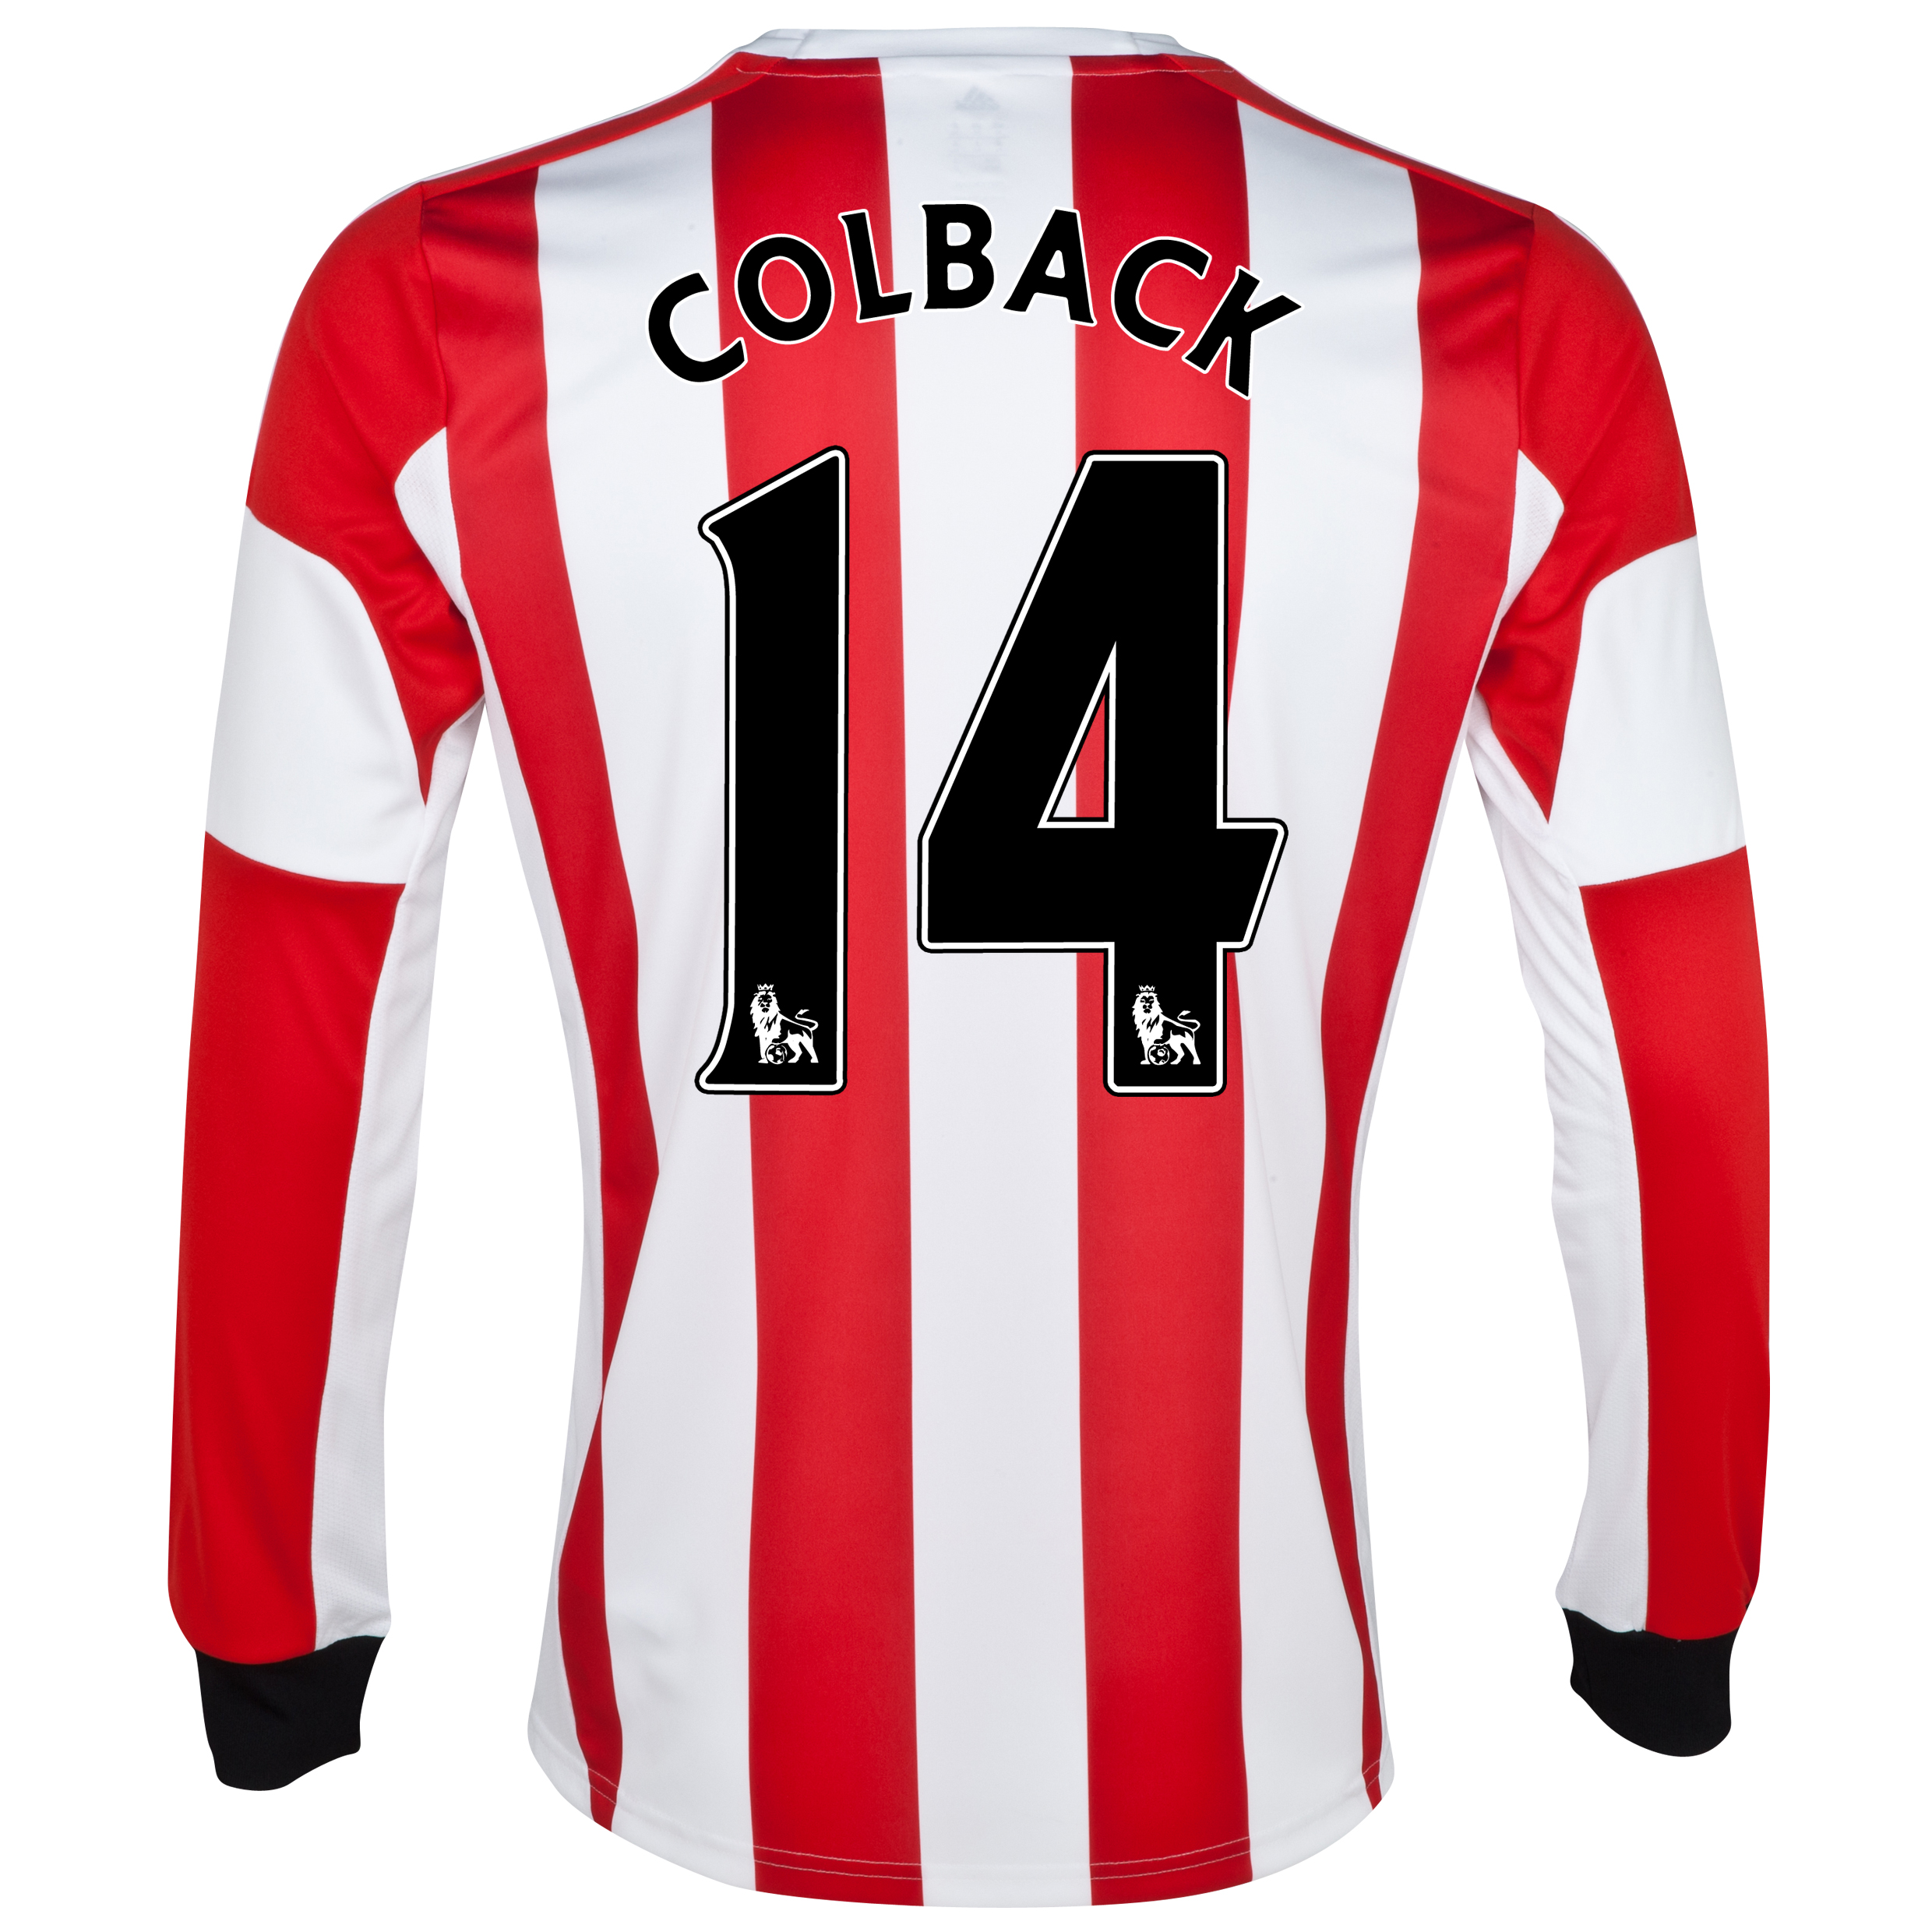 Sunderland Home Shirt 2013/14 - Long Sleeved - Junior with Colback 14 printing